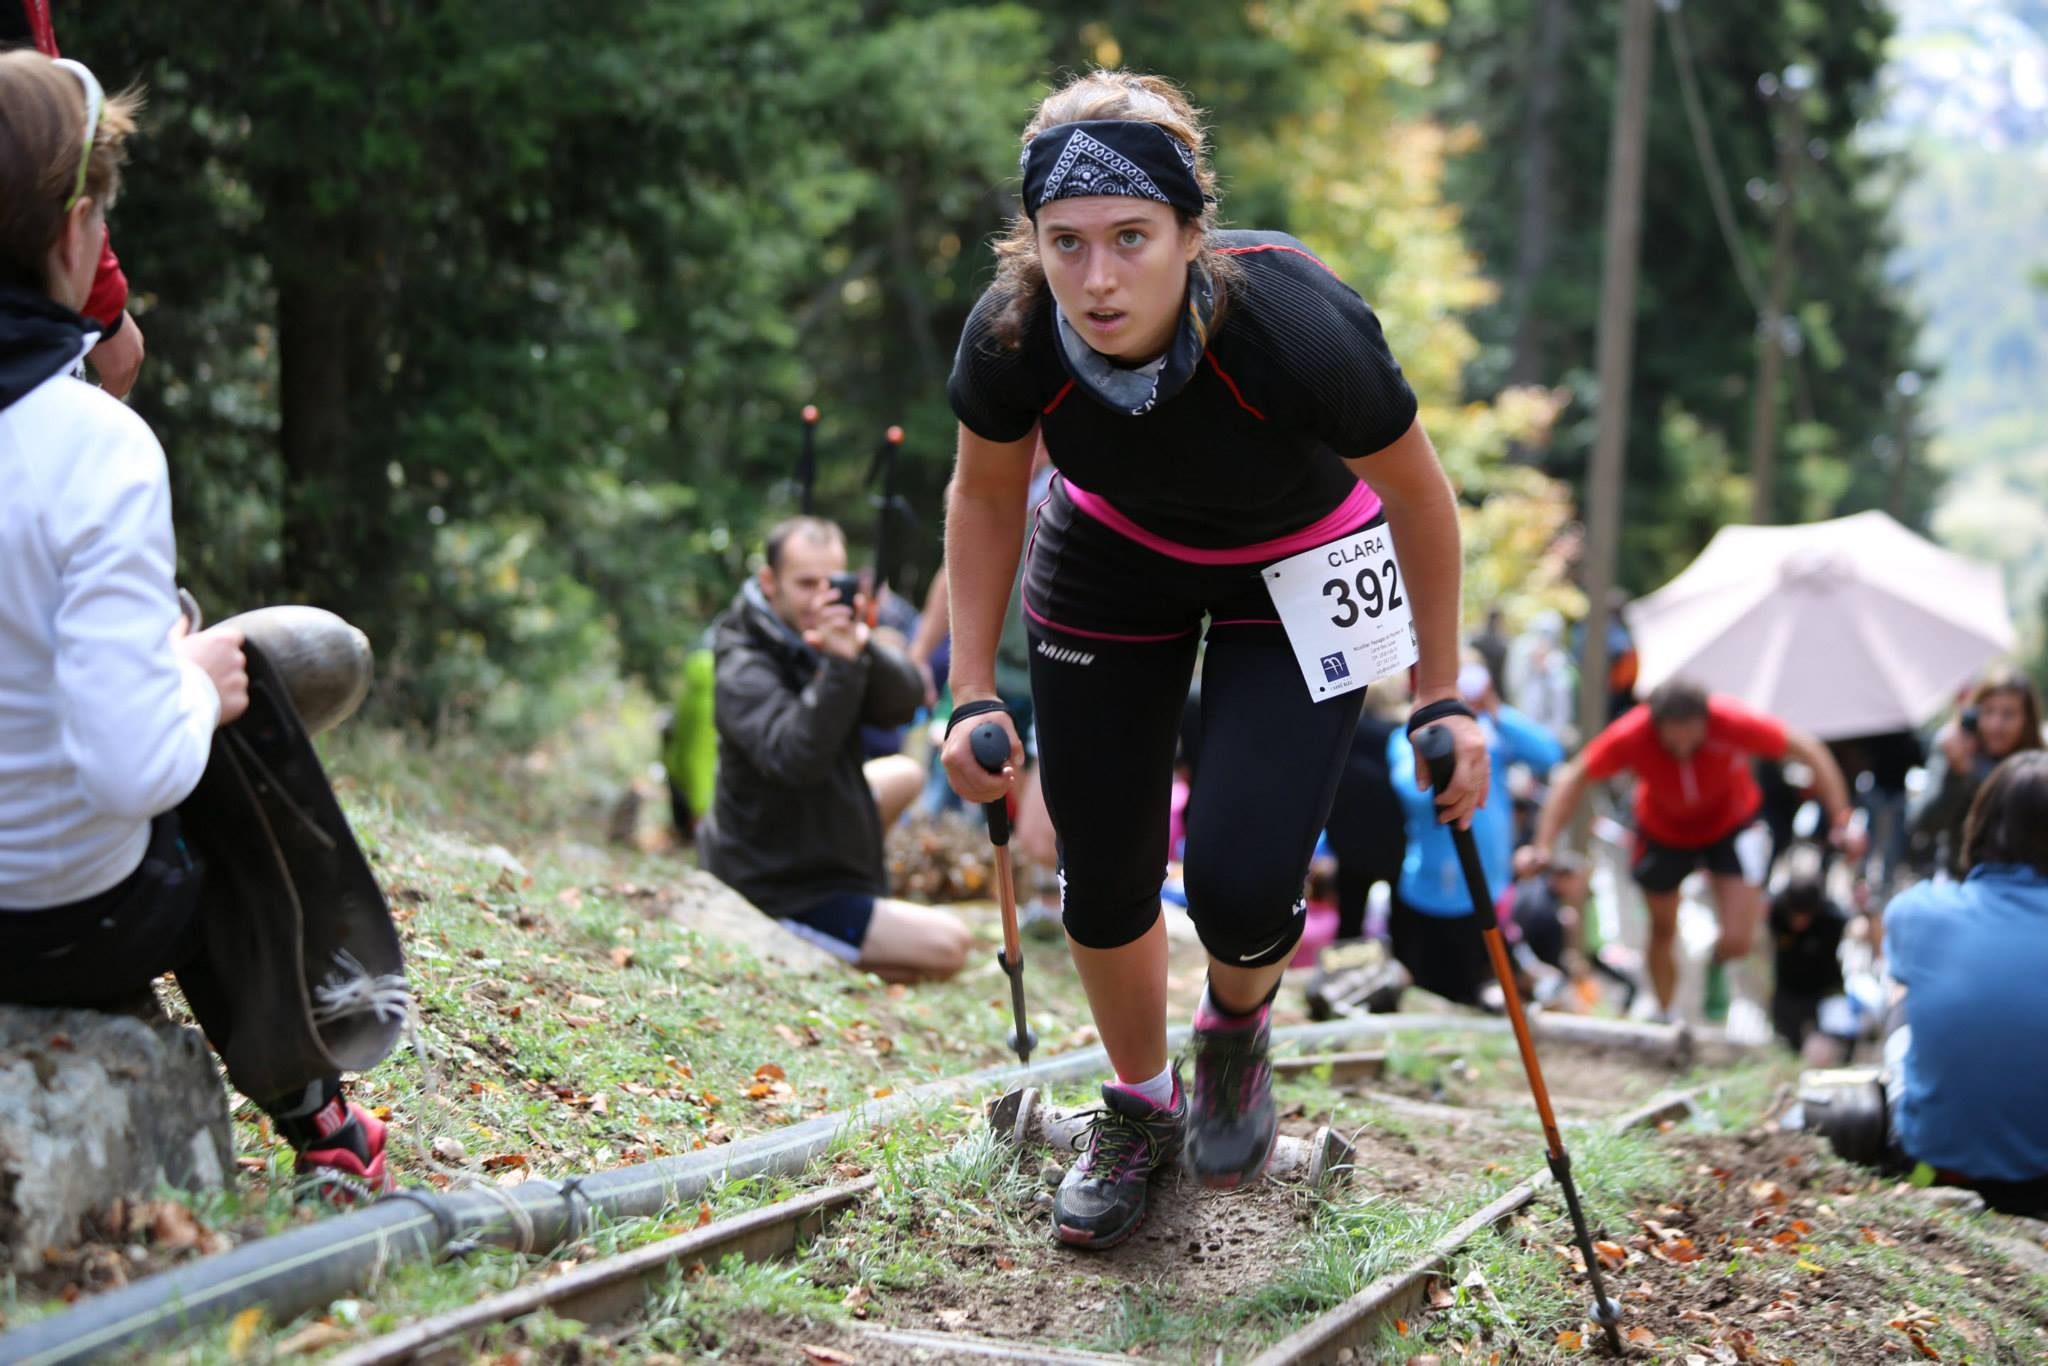 10633141 10152816634769176 4475571162794945369 o - PHOTOS DES ATHLETES FEMININES SUR LE KM VERTICAL DE FULLY (SUISSE) / 25-10-14